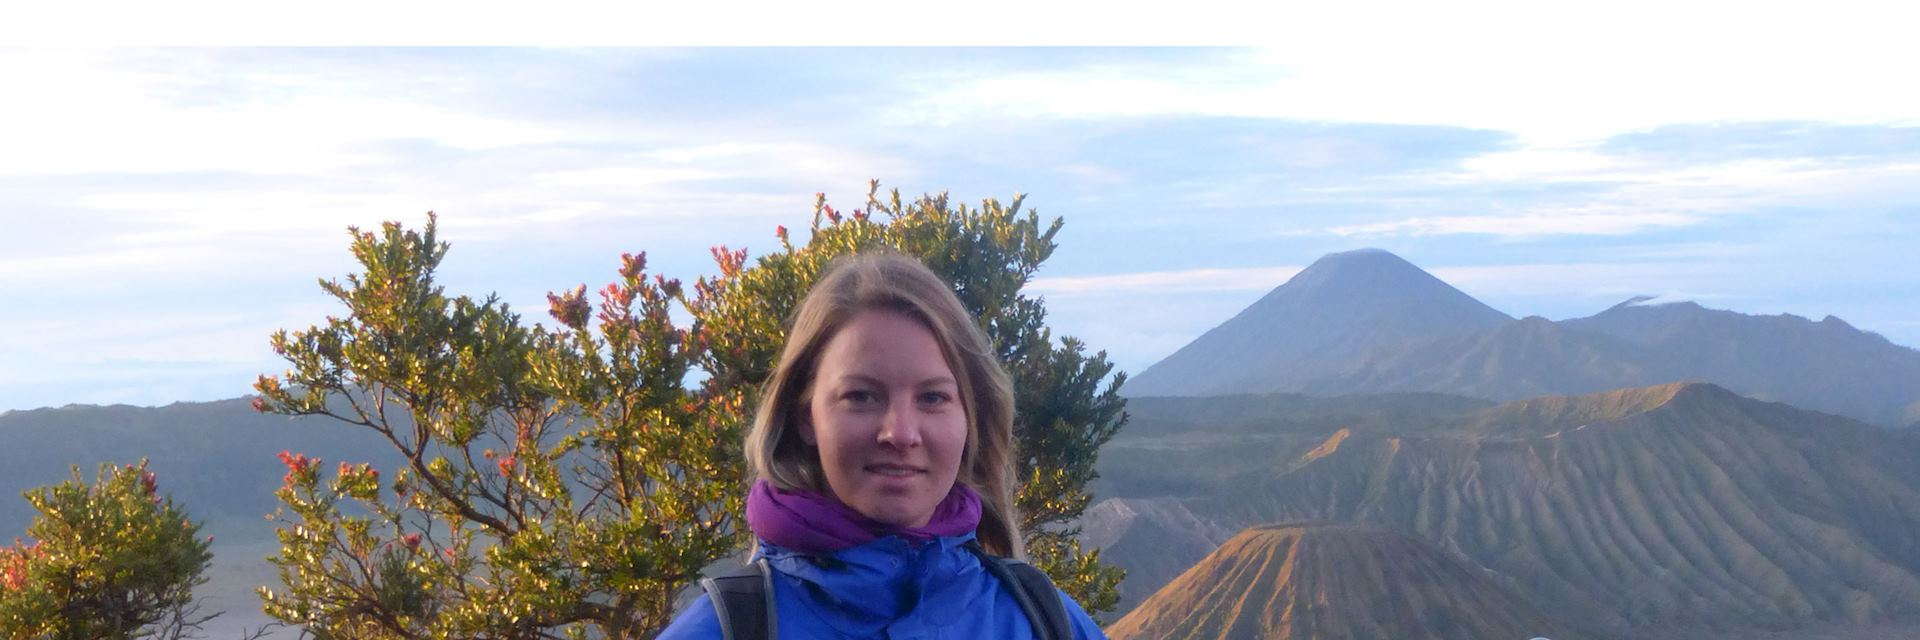 Harriet after sunrise at the Mount Bromo viewpoint, Java, Indonesia